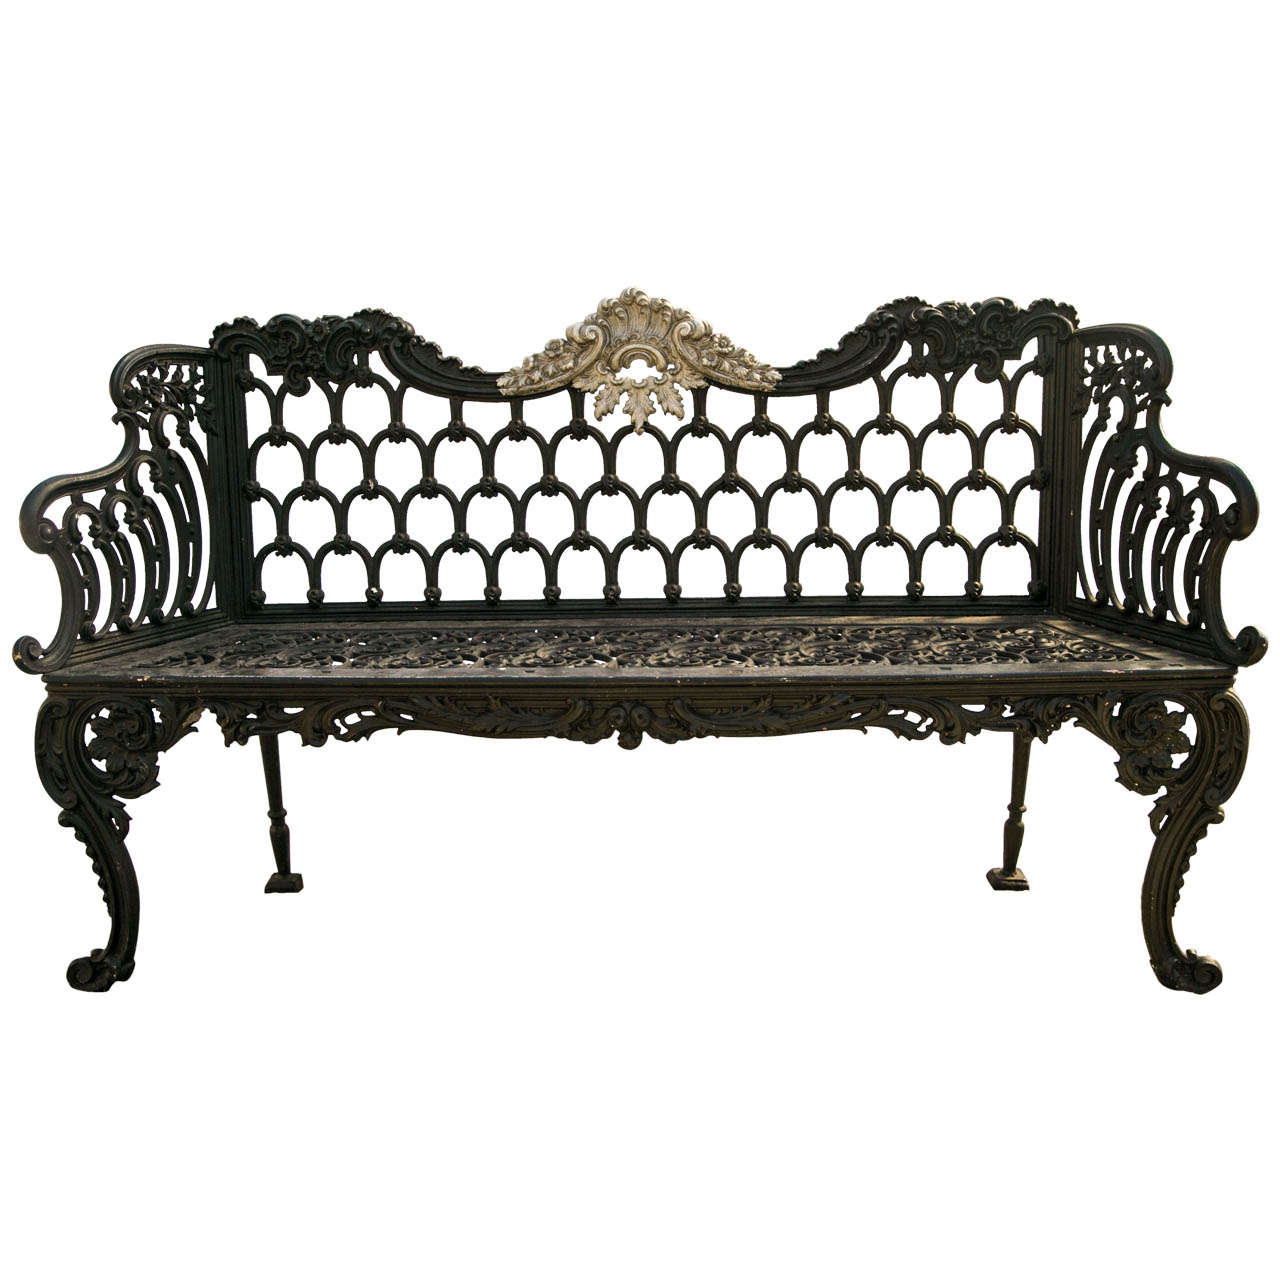 Scottish Cast Iron Bench By Carron At 1stdibs